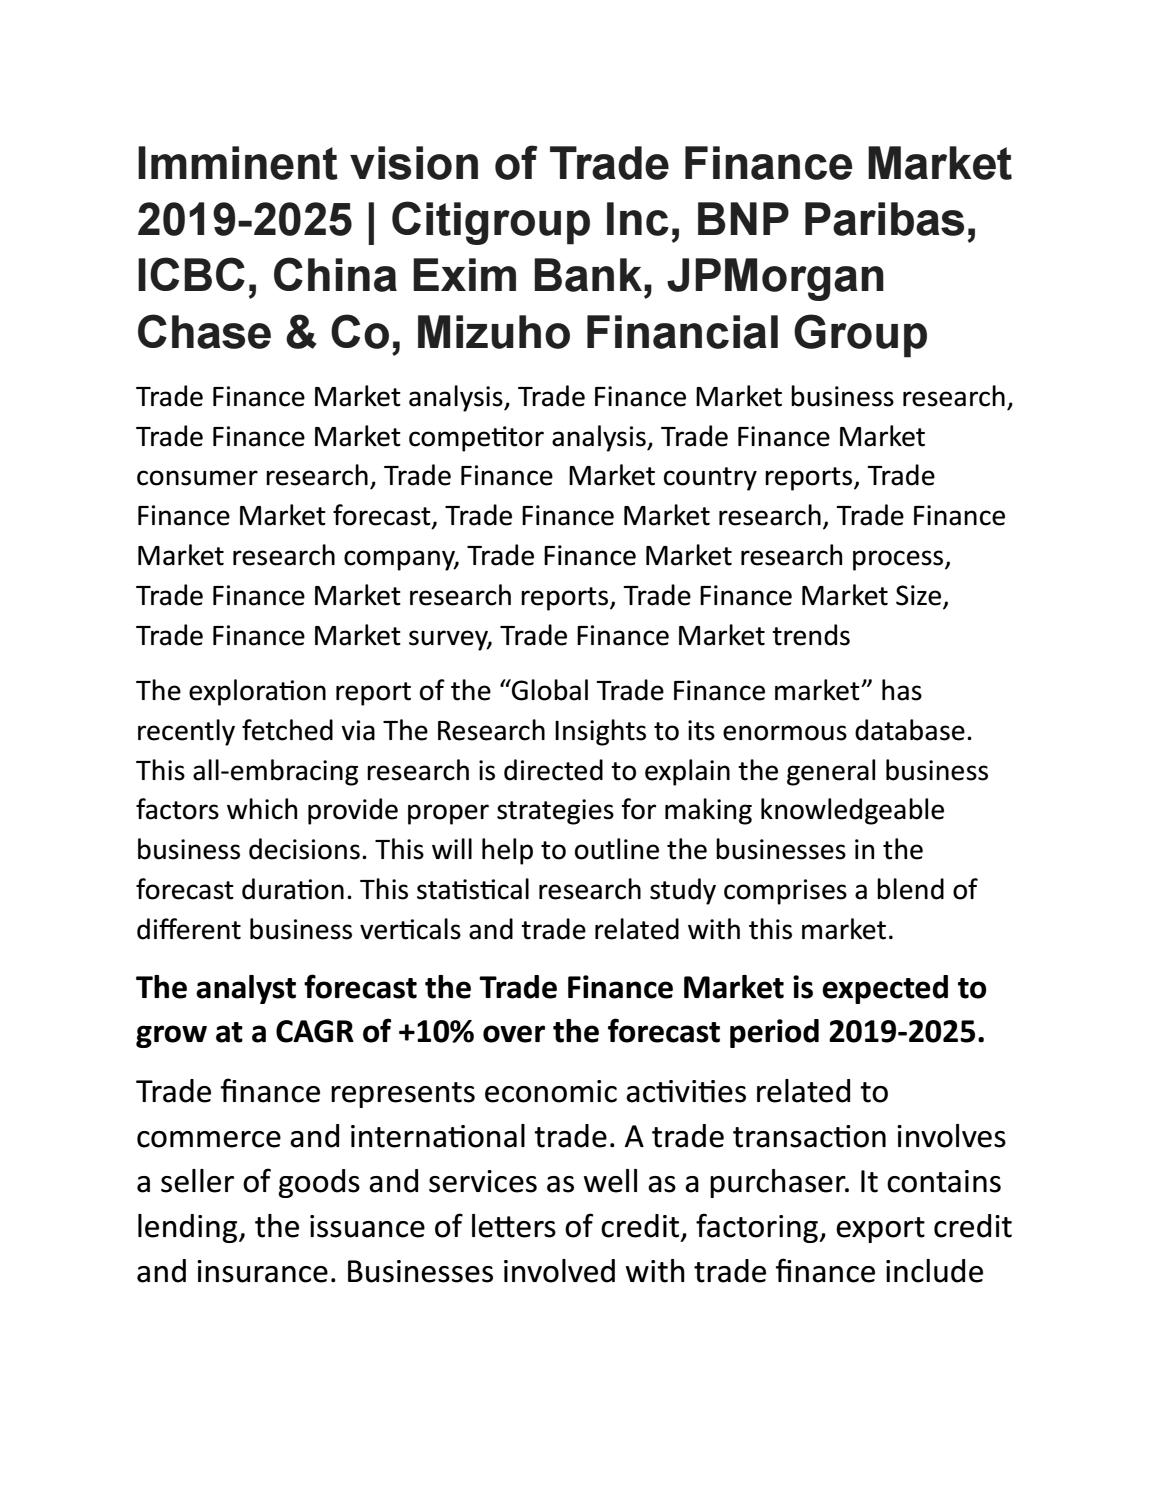 Trade Finance Market 2019-2025 by researchinsights1 - issuu